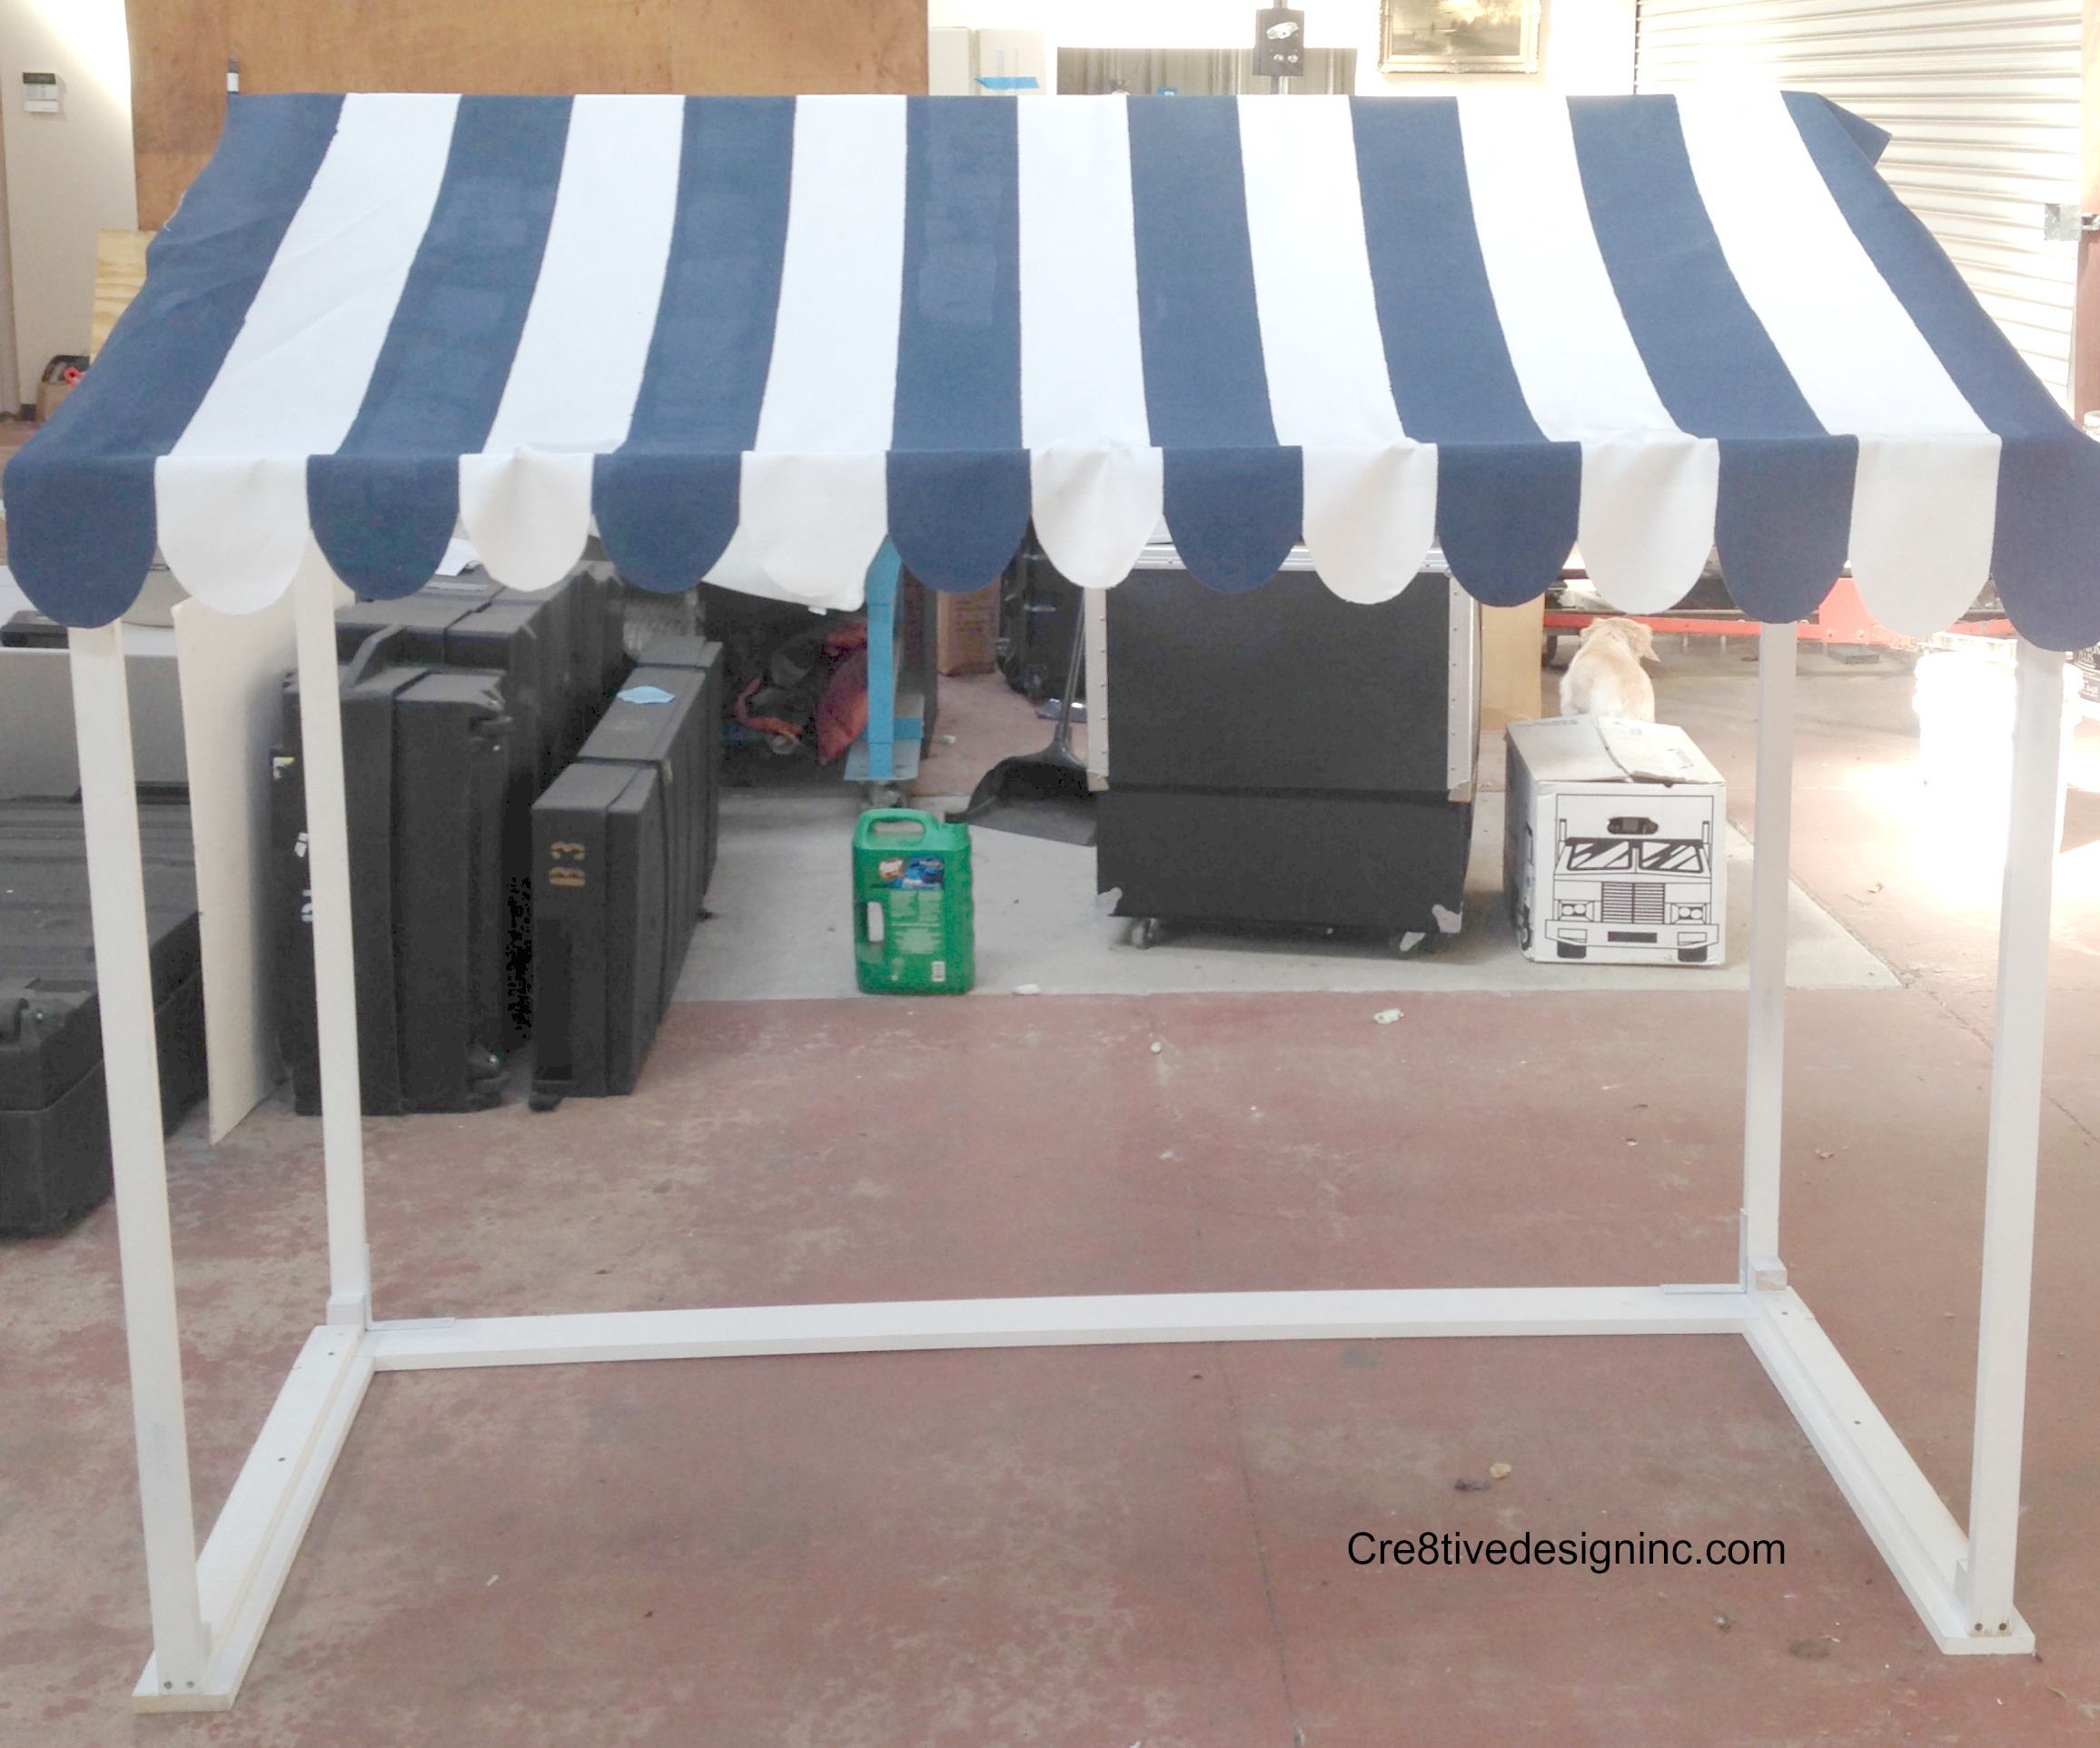 How to make a table top canopy cre8tive designs inc for How to create a canopy